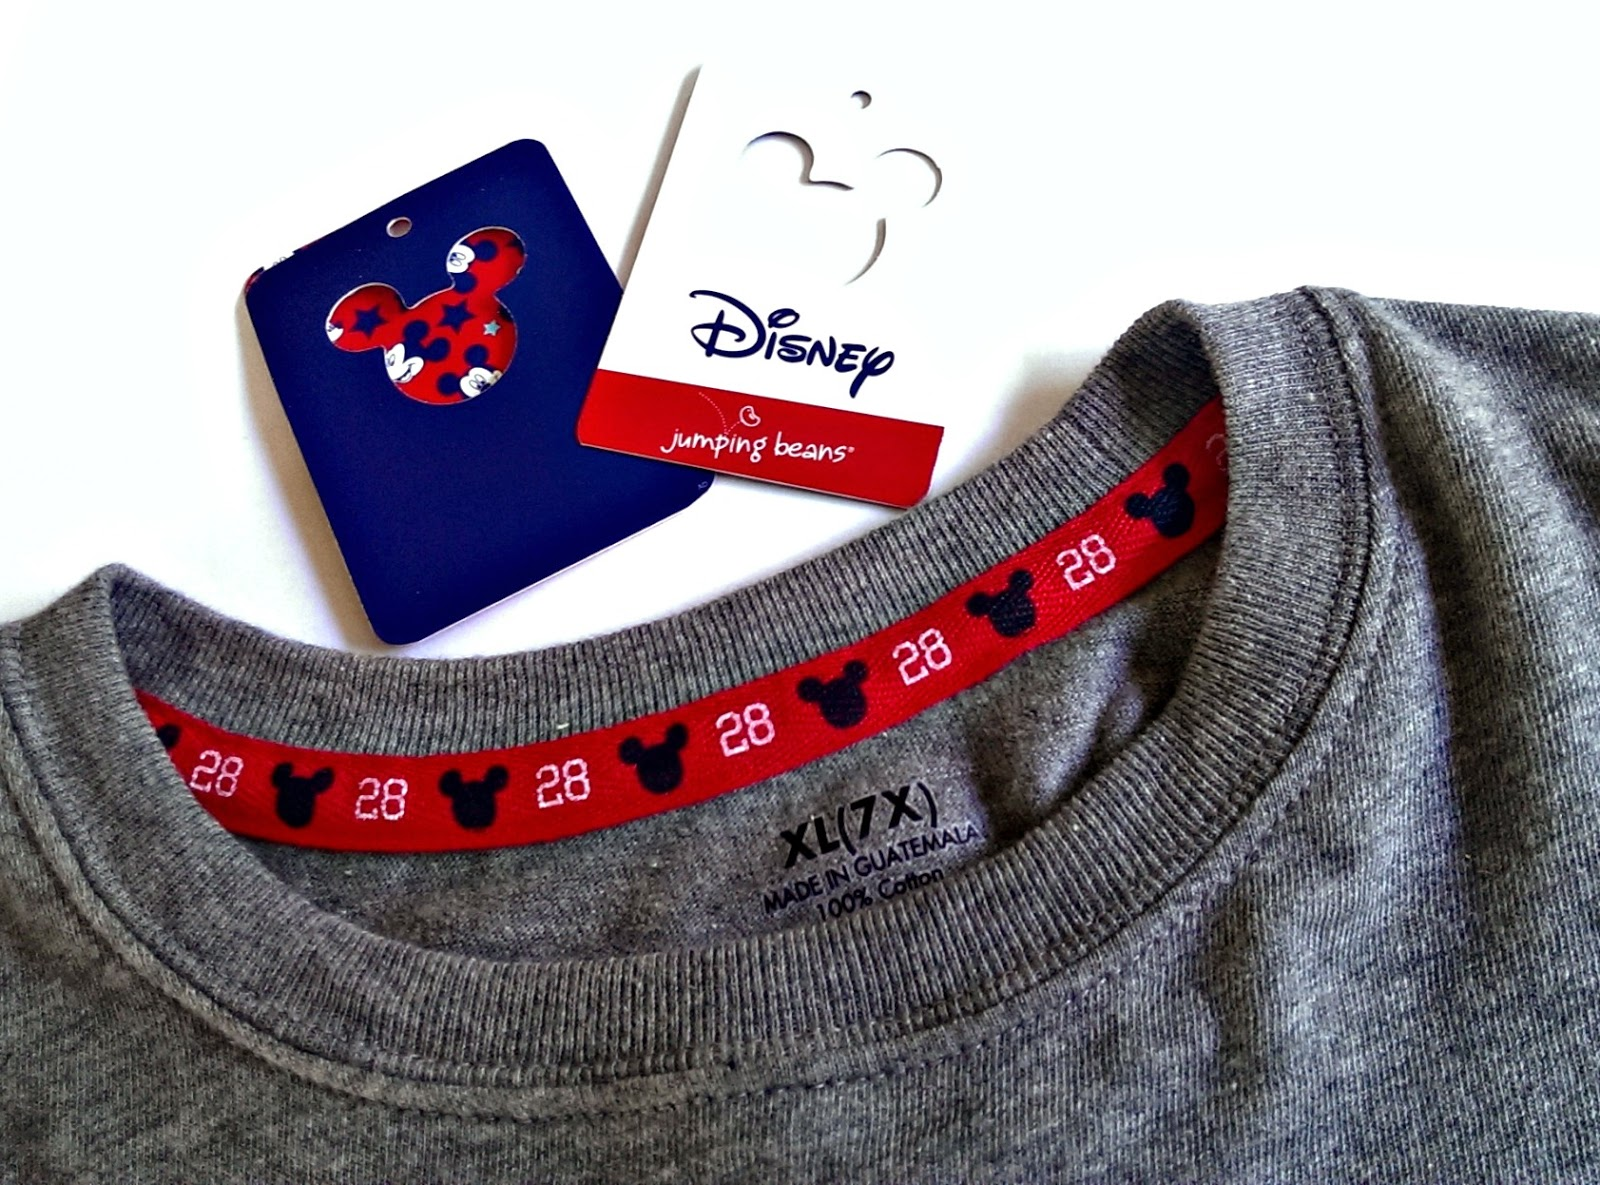 Kohl's introduces Disney Magic at Play clothing for Jumping Beans